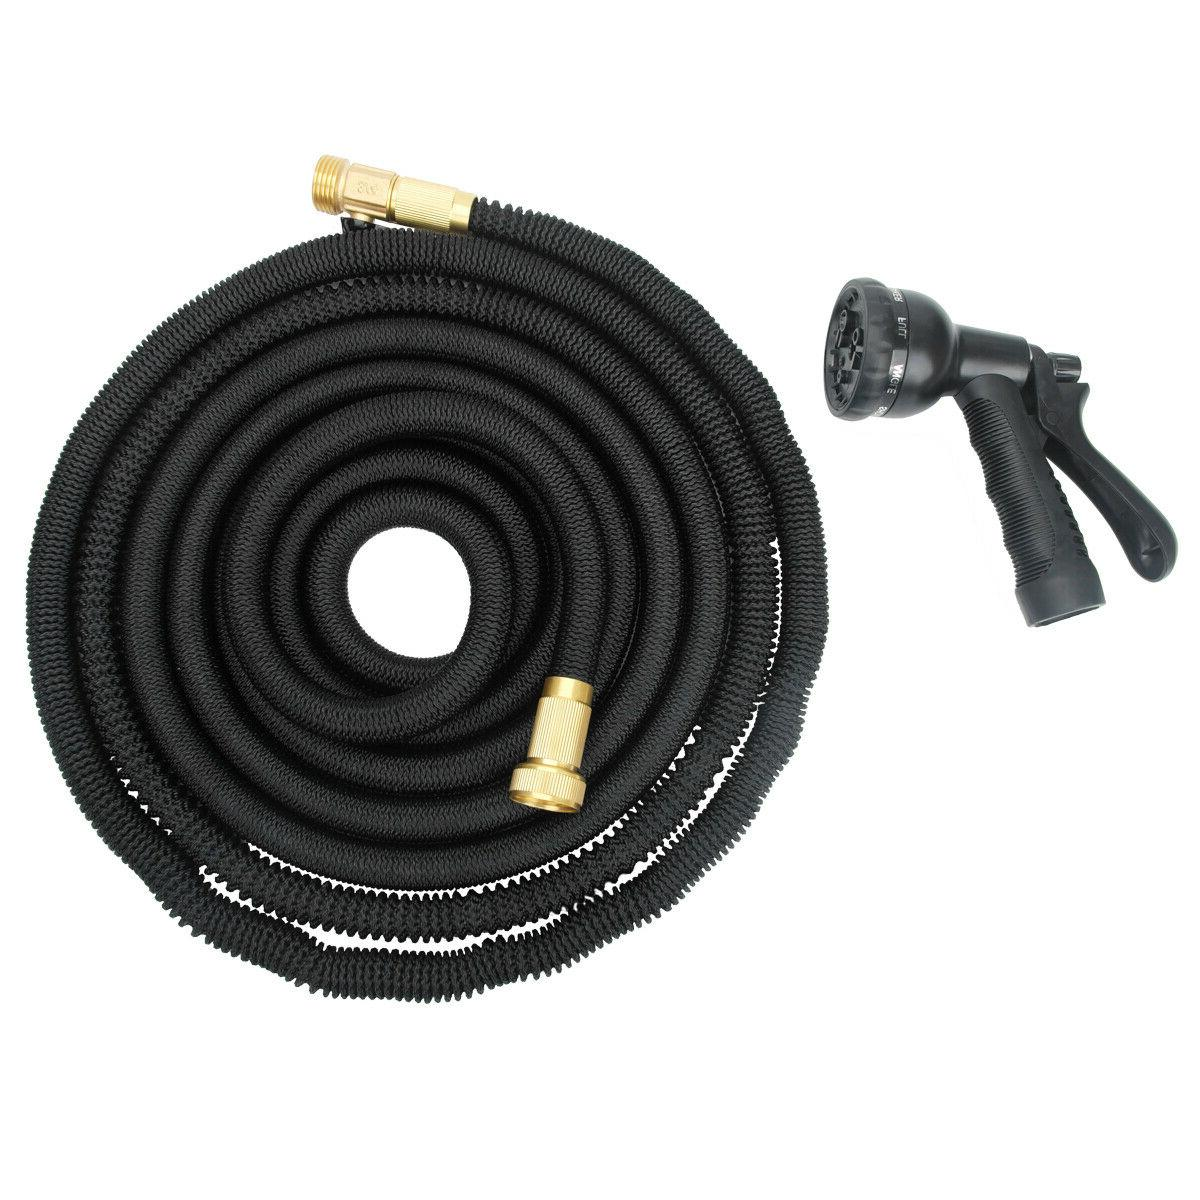 New 50ft Expandable Flexible Garden Water Hose Retractible P